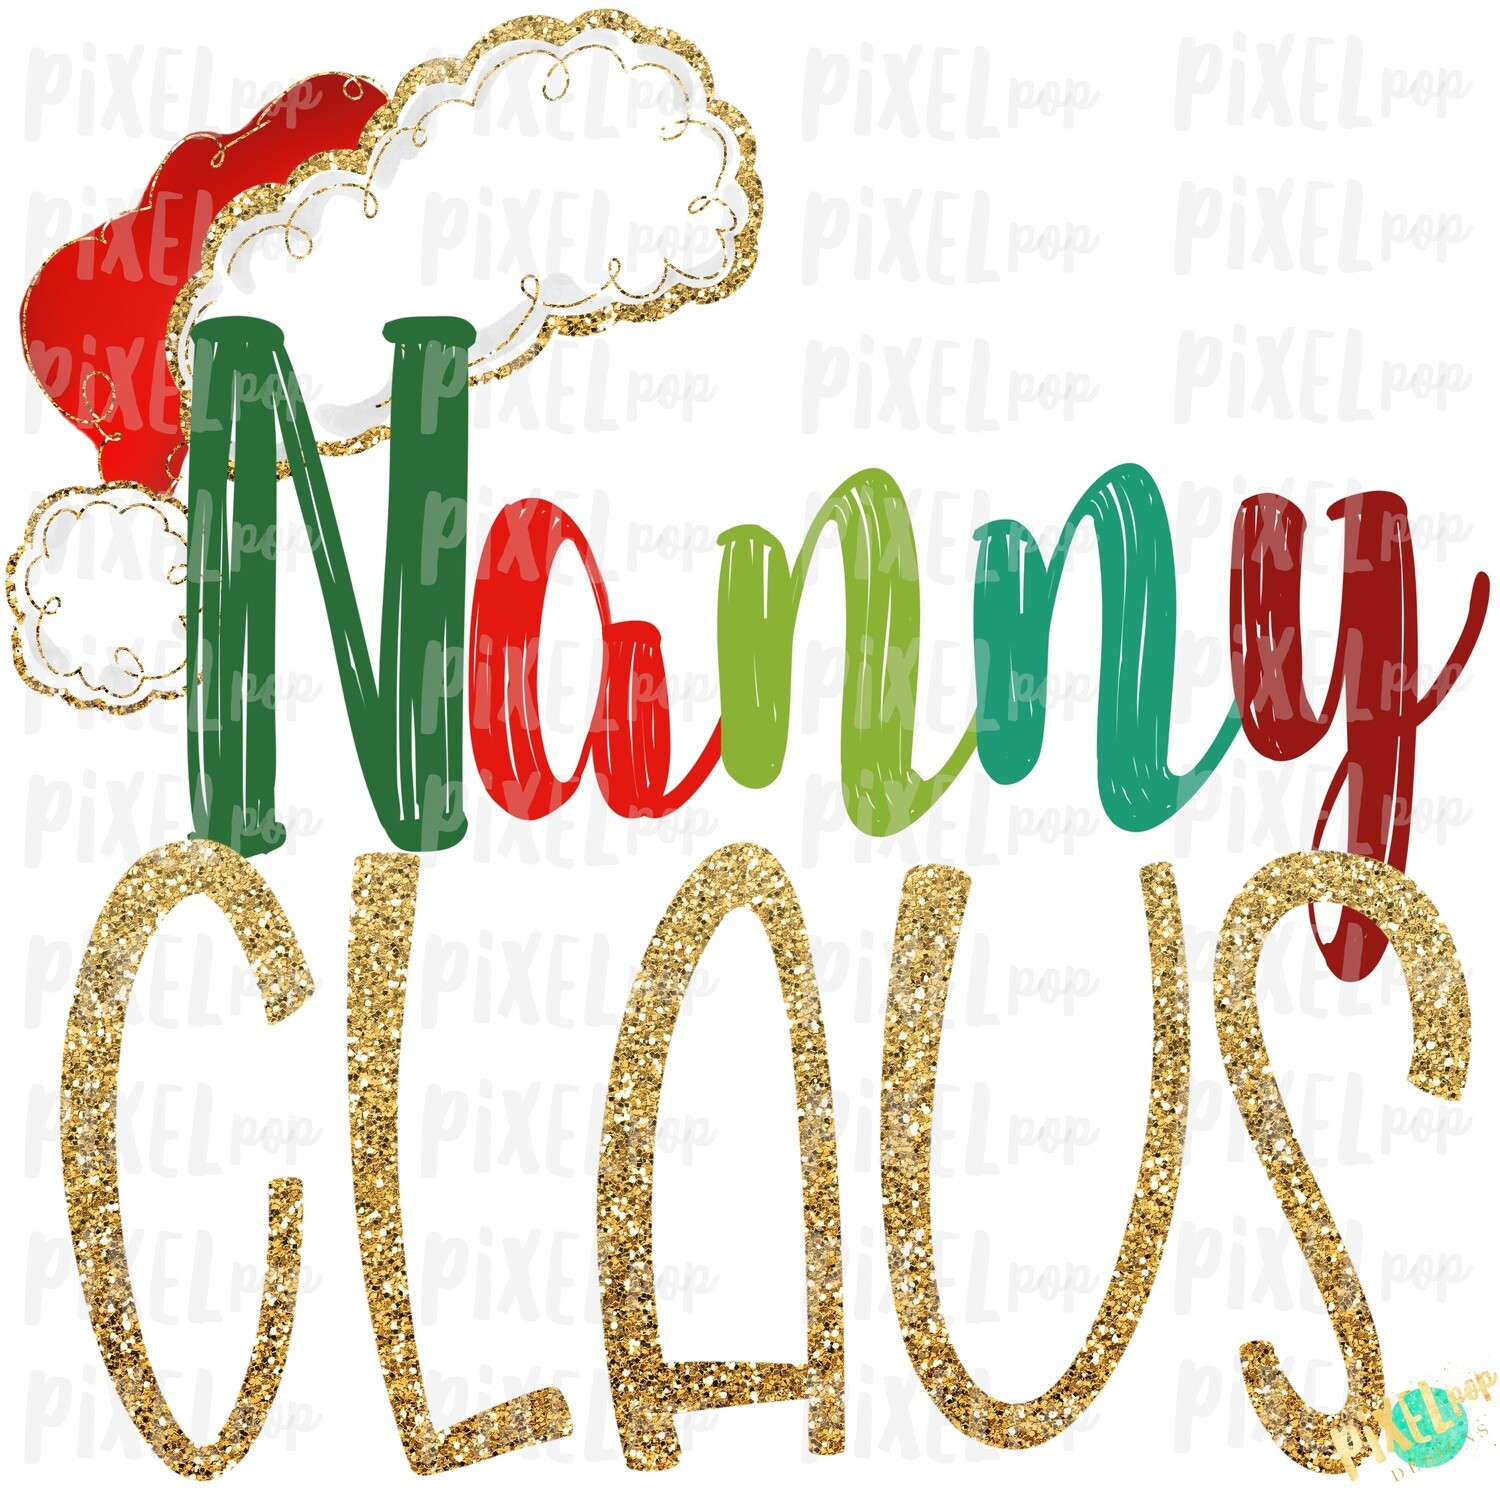 Nanny Claus Santa Hat Digital Watercolor Sublimation PNG Art | Drawn Design | Sublimation PNG | Digital Download | Printable Artwork | Art